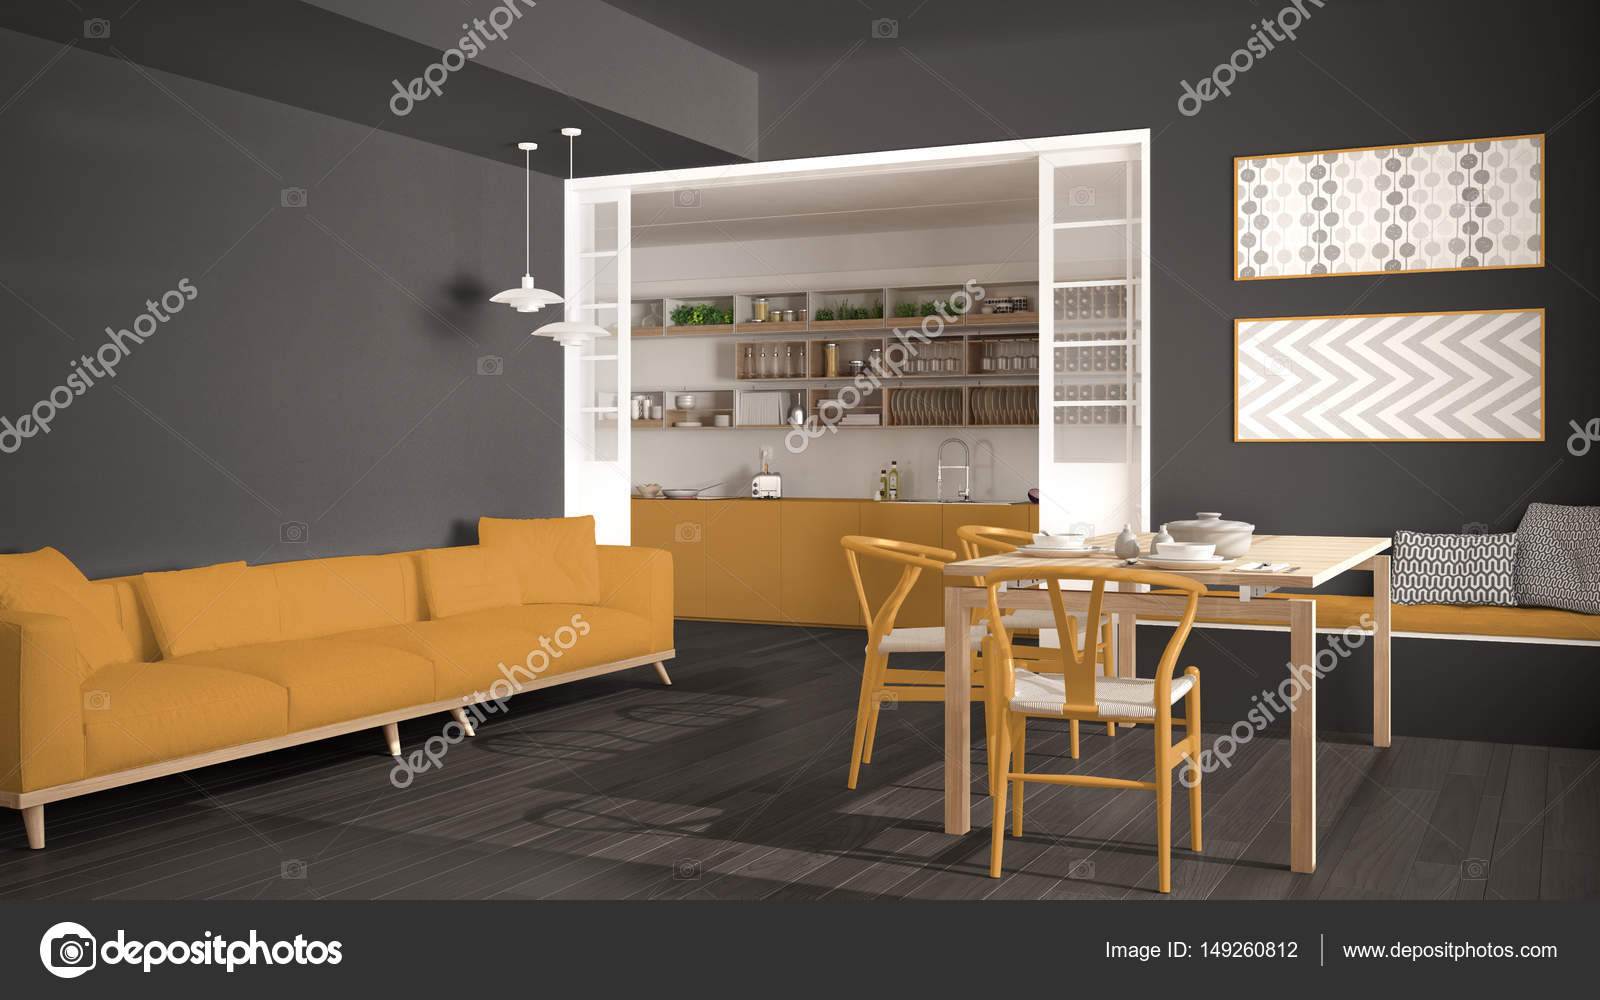 Minimalist Kitchen And Living Room With Sofa, Table And Chairs, U2014 Stock  Photo